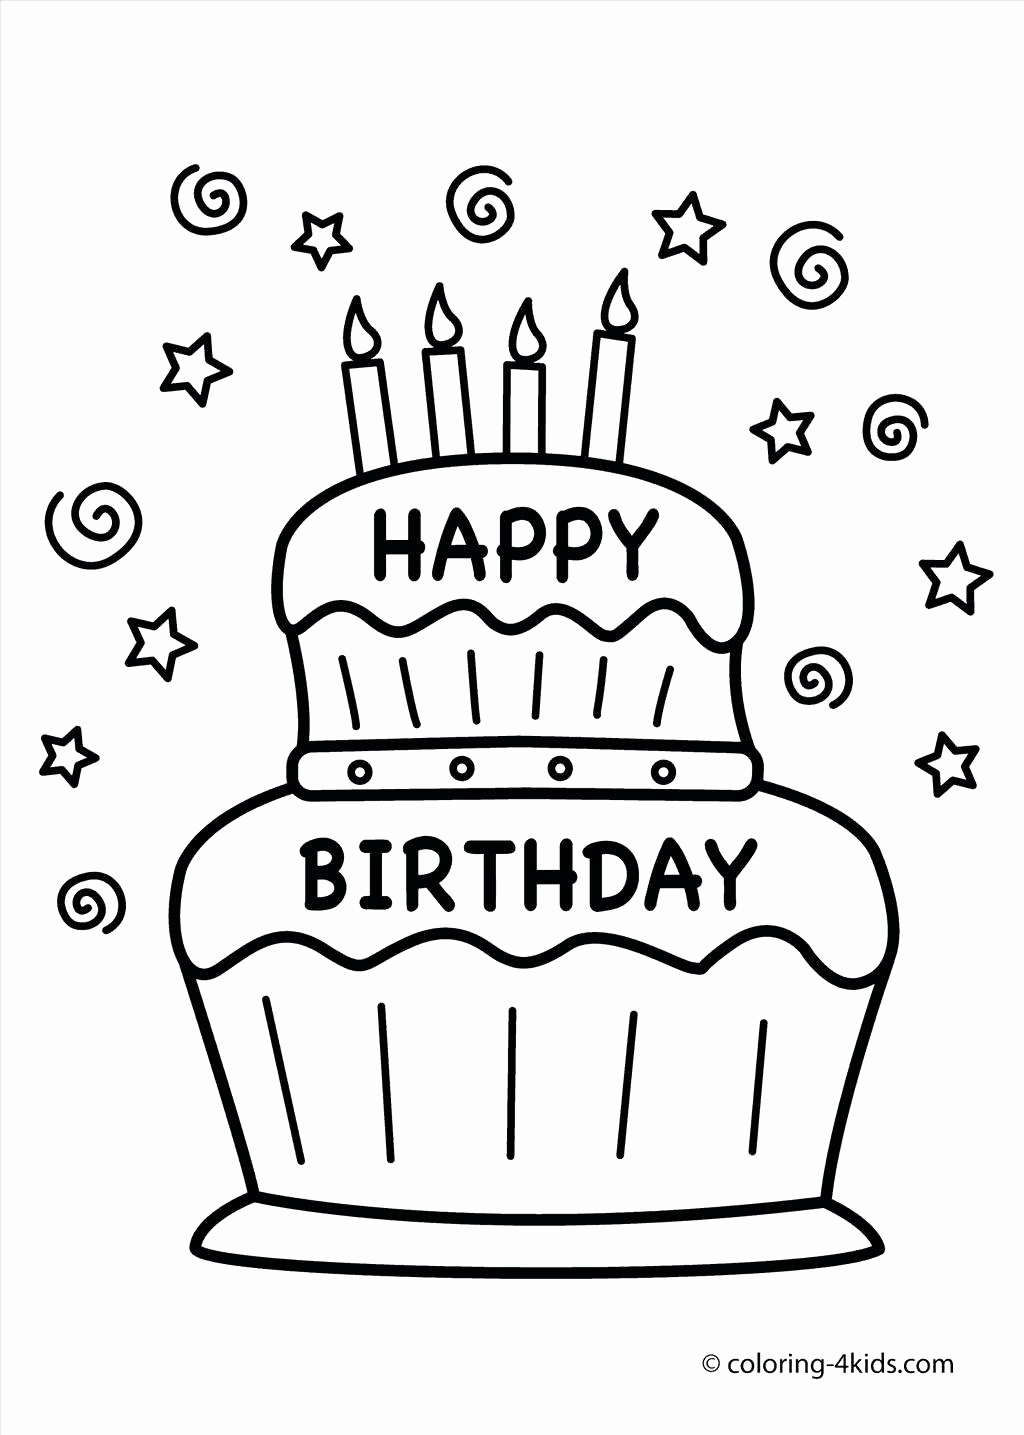 coloring pages for birthday cakes ; printable-birthday-coloring-pages-example-coloring-pages-birthday-cake-coloring-page-free-printable-birthday-of-printable-birthday-coloring-pages